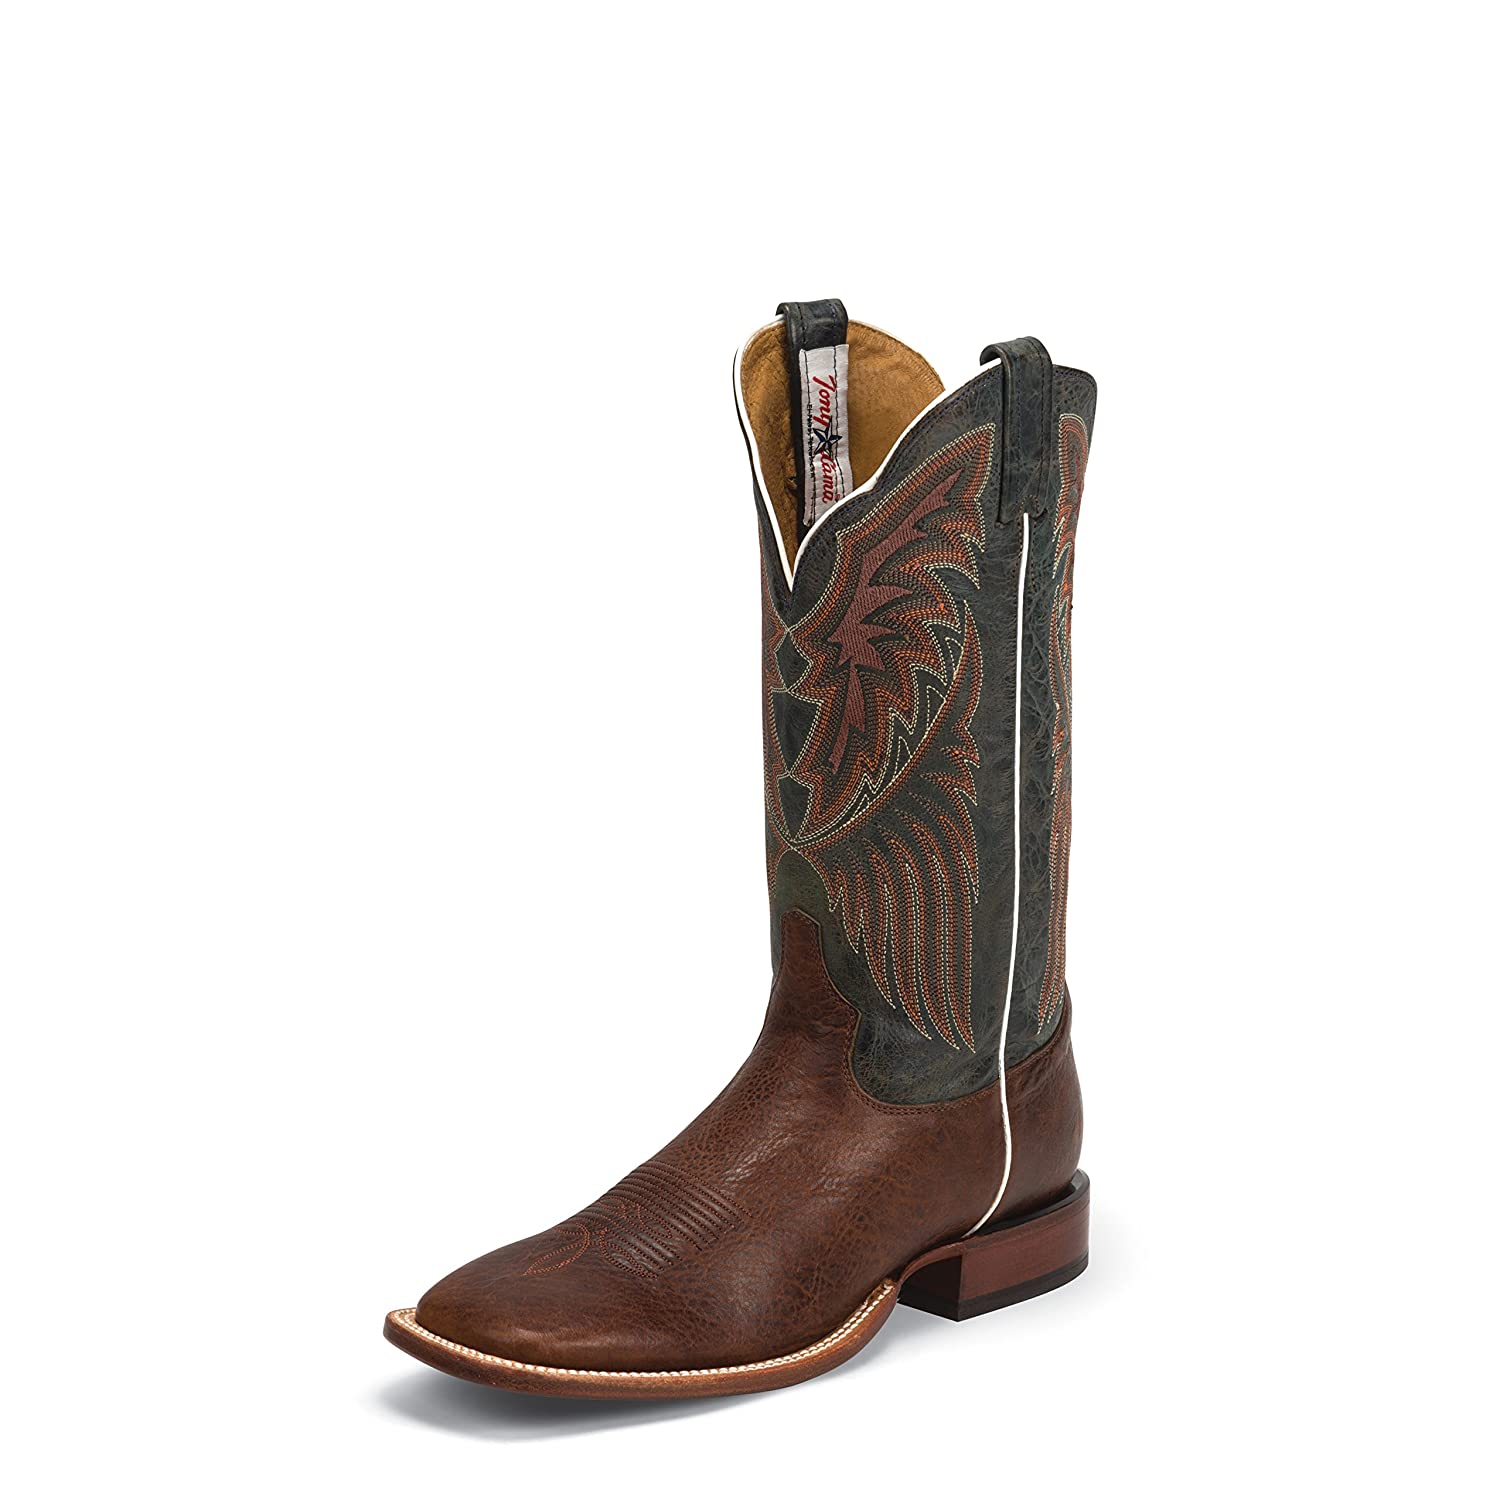 Tony Lama Men's San Saba Bison-B1104 Western Boot